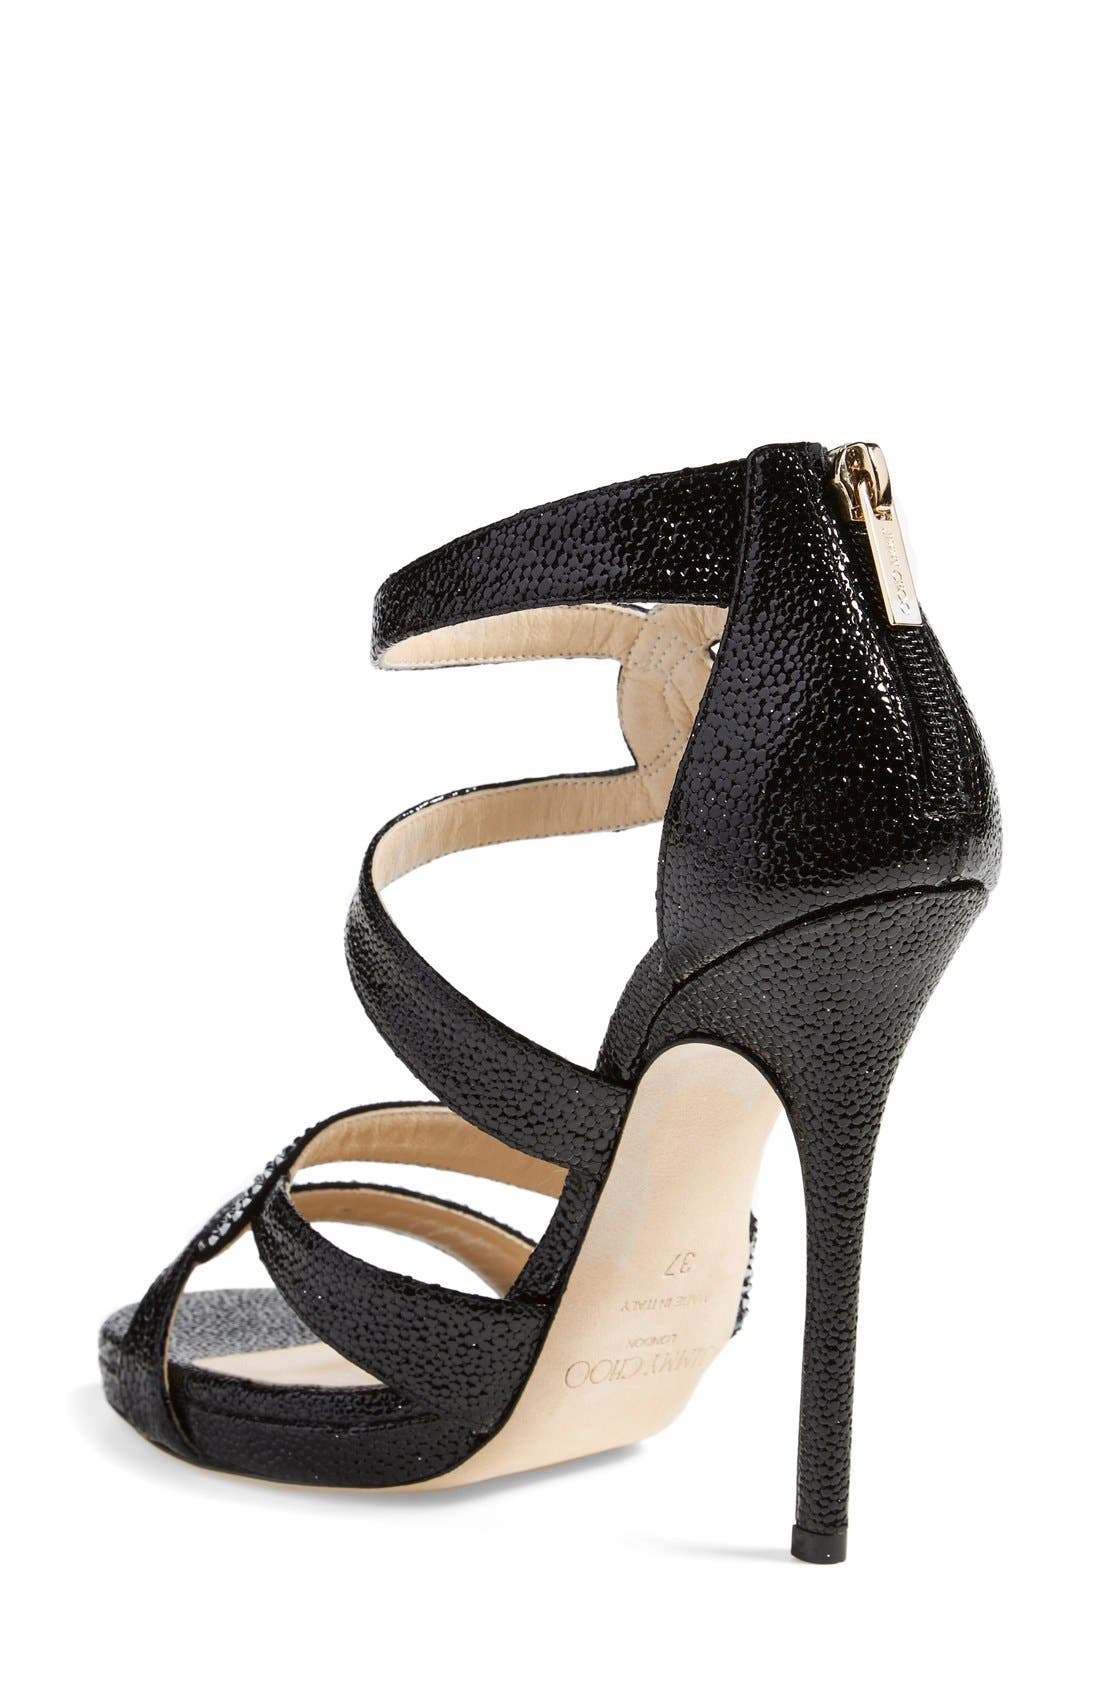 Alternate Image 2  - Jimmy Choo 'Taint' Platform Sandal (Women)